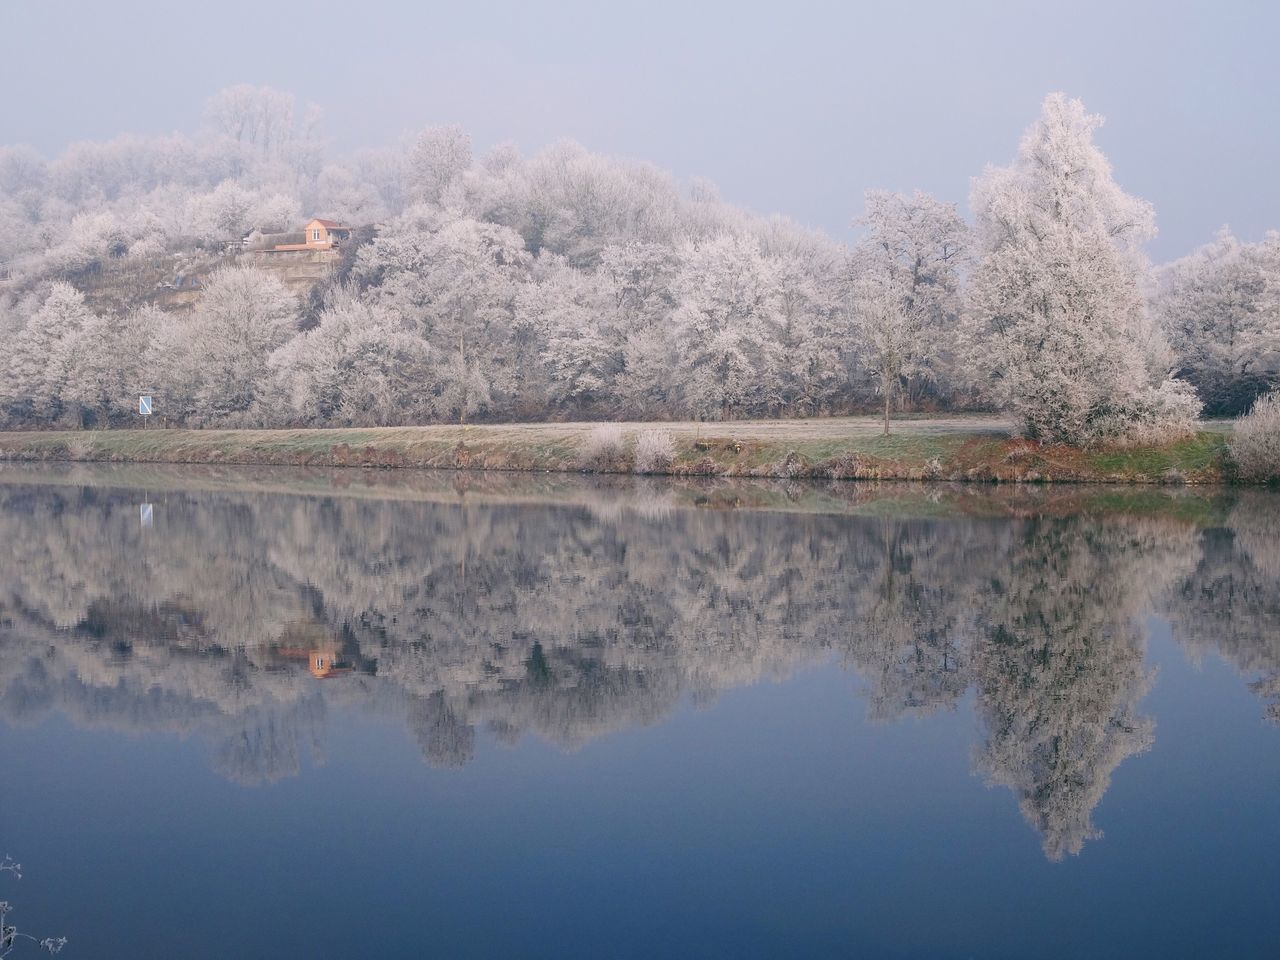 Reflection Water Nature Tree Frost Tranquility Snow Waterfront New Year Symmetry Lake Idyllic Outdoors Standing Water No People Day Sky Water Reflections Mirror Lake Forest Trees Winter White Frost Neckar River